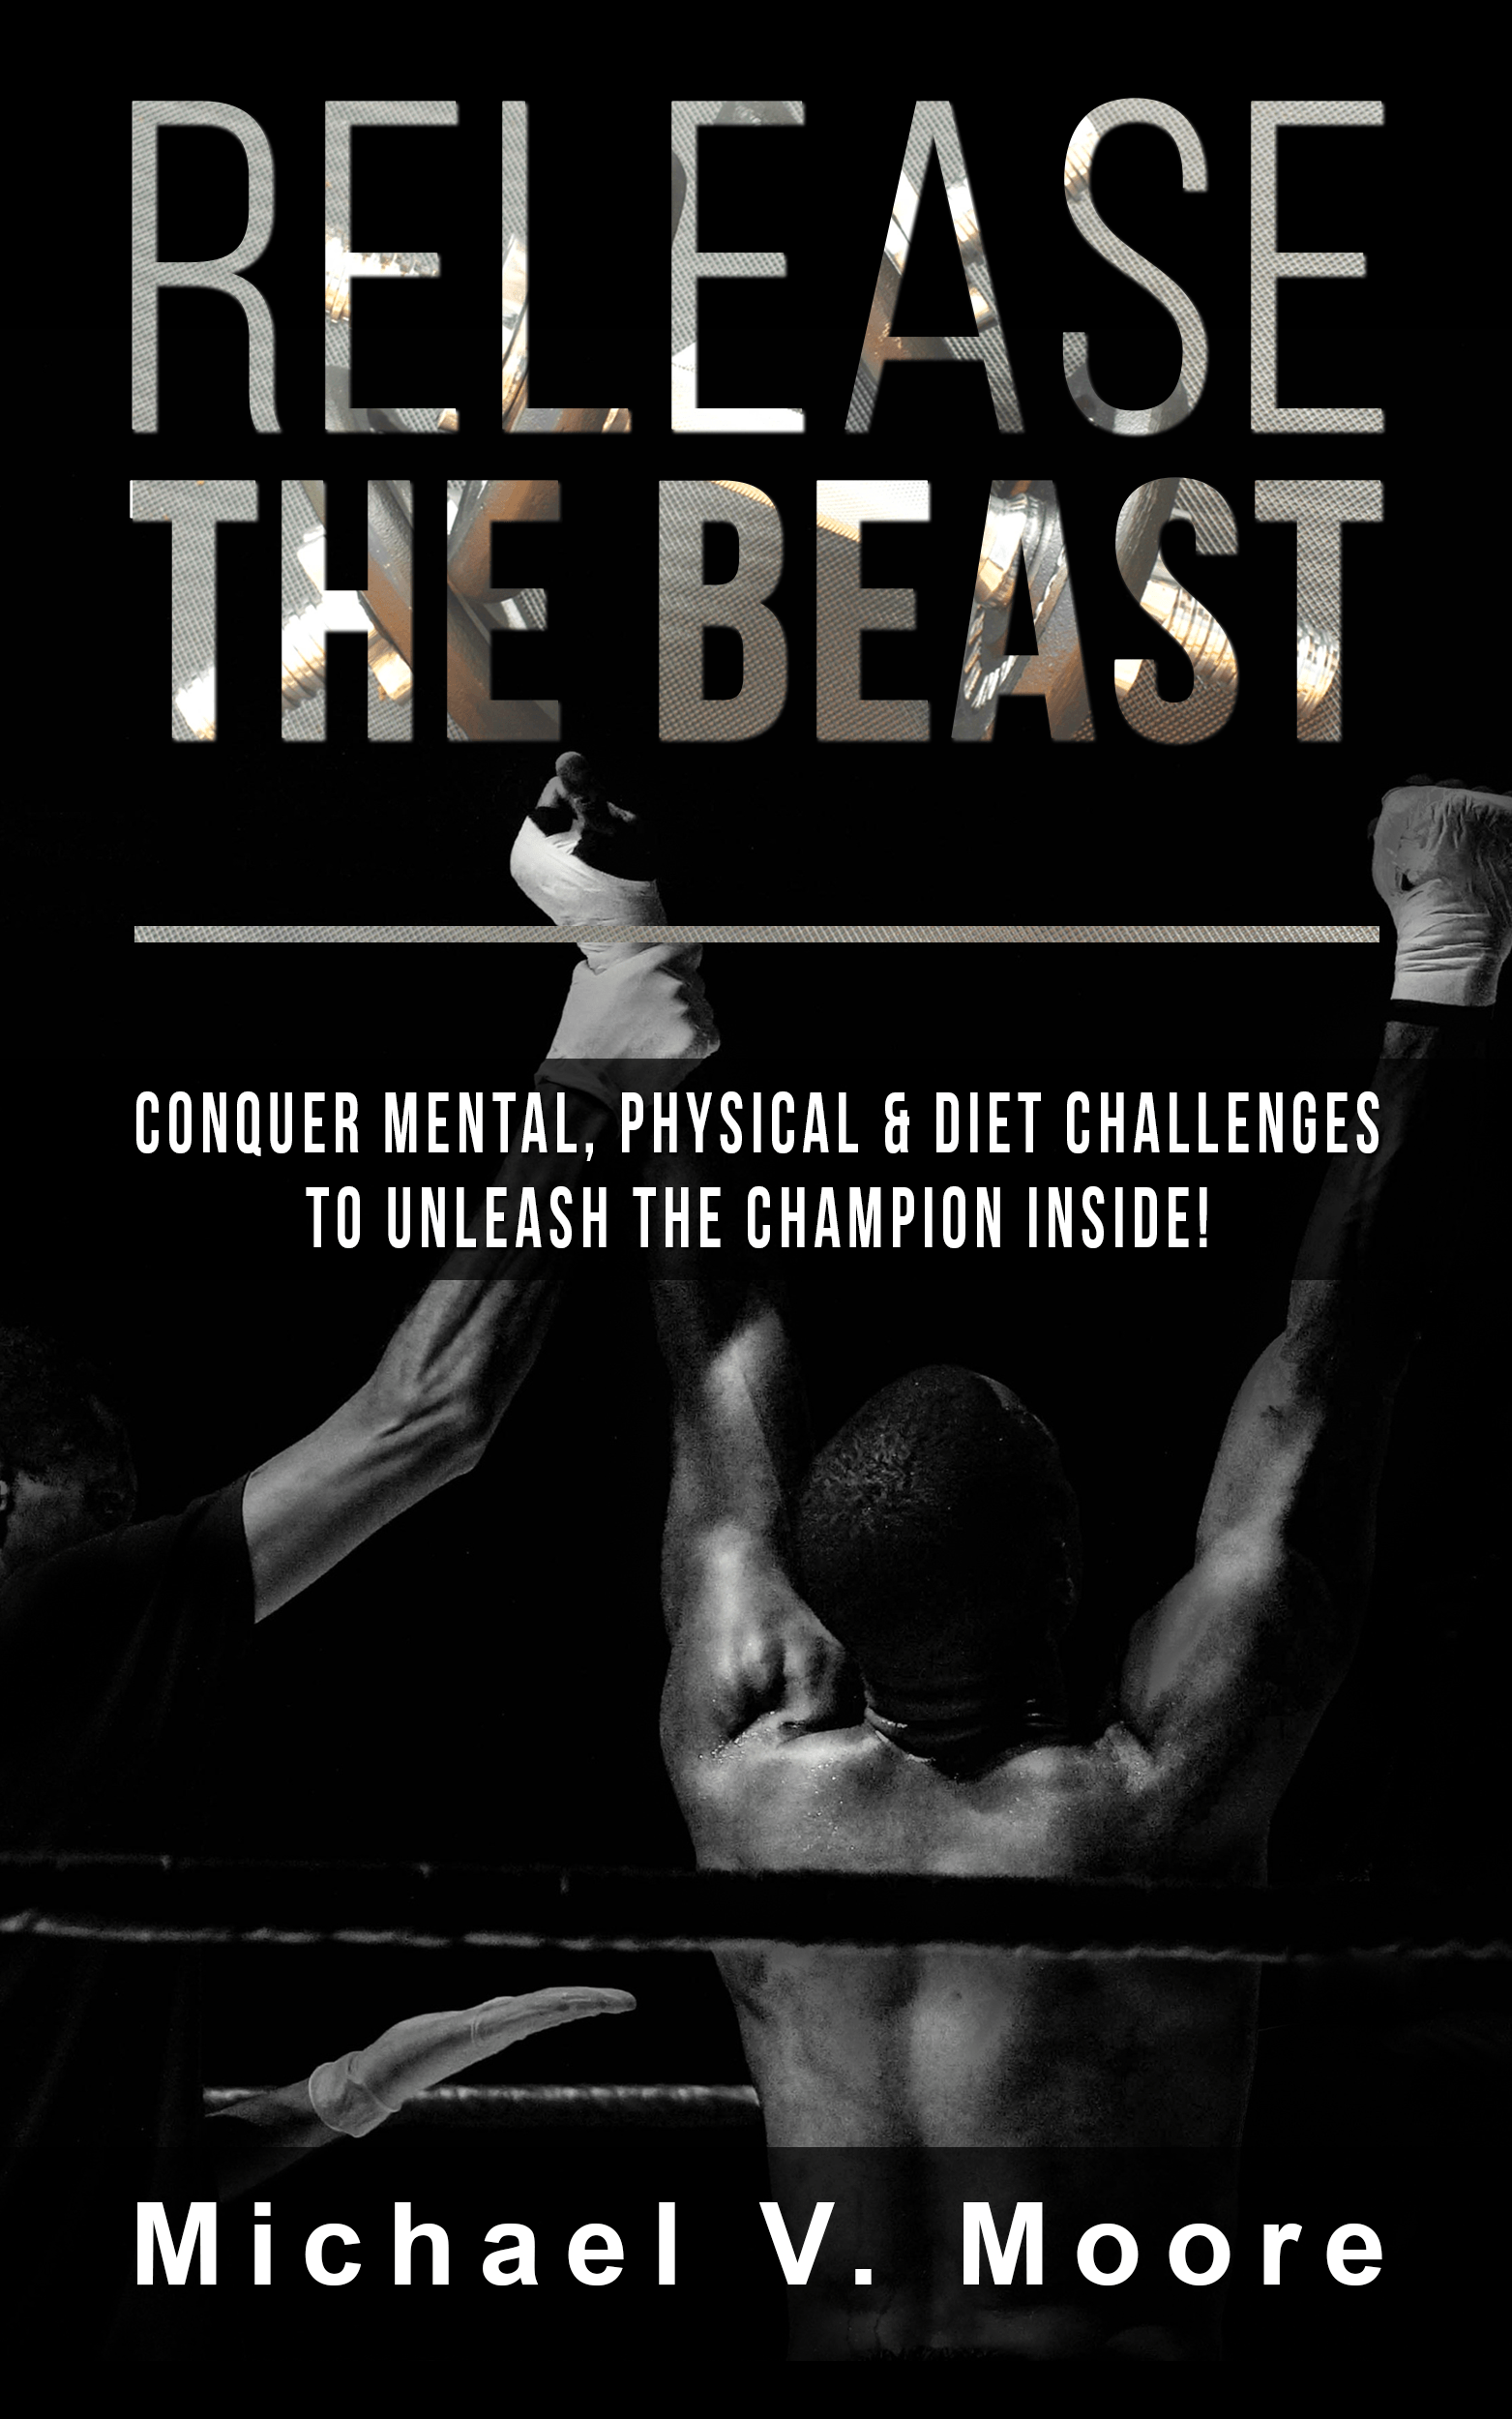 Release The Beast: Conquer Mental, Physical & Diet Challenges To Unlease The Champion Inside! from Michael V. Moore aka MicVinny